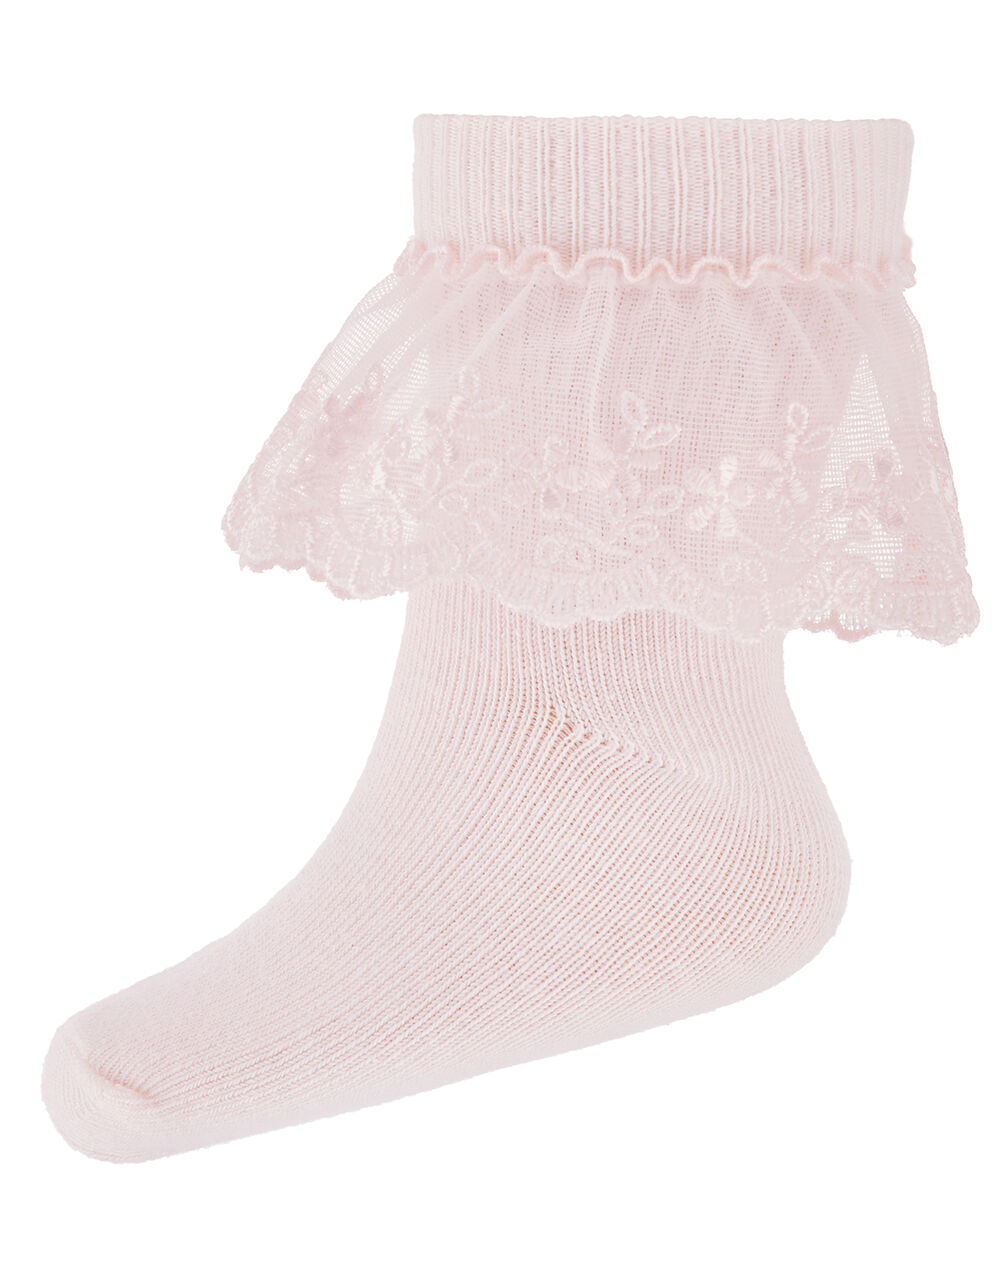 Baby Poppy Lace Socks, Pink (PINK), large